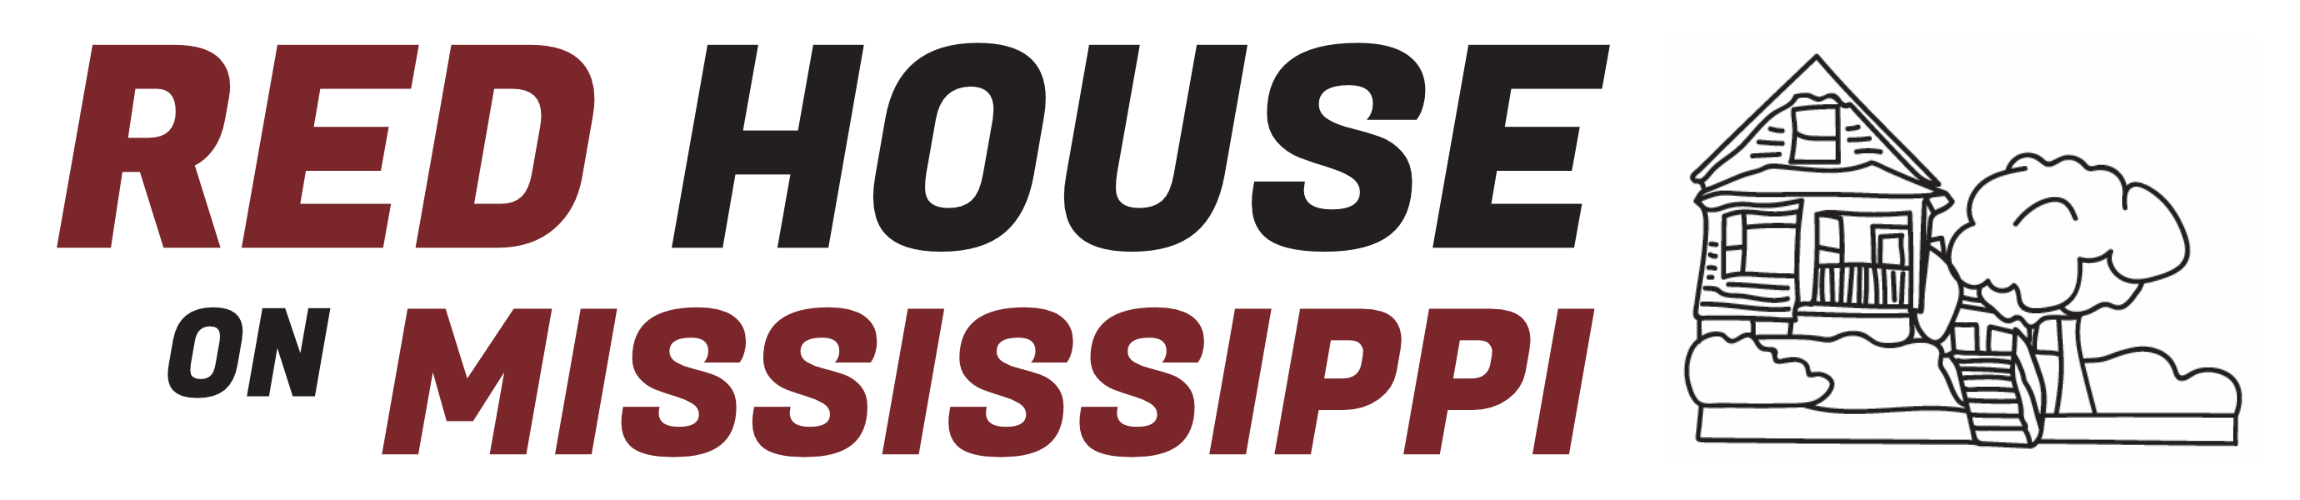 The words 'Red House on Mississippi' in big, bold, red and black text with line-drawing of the Red House next to it